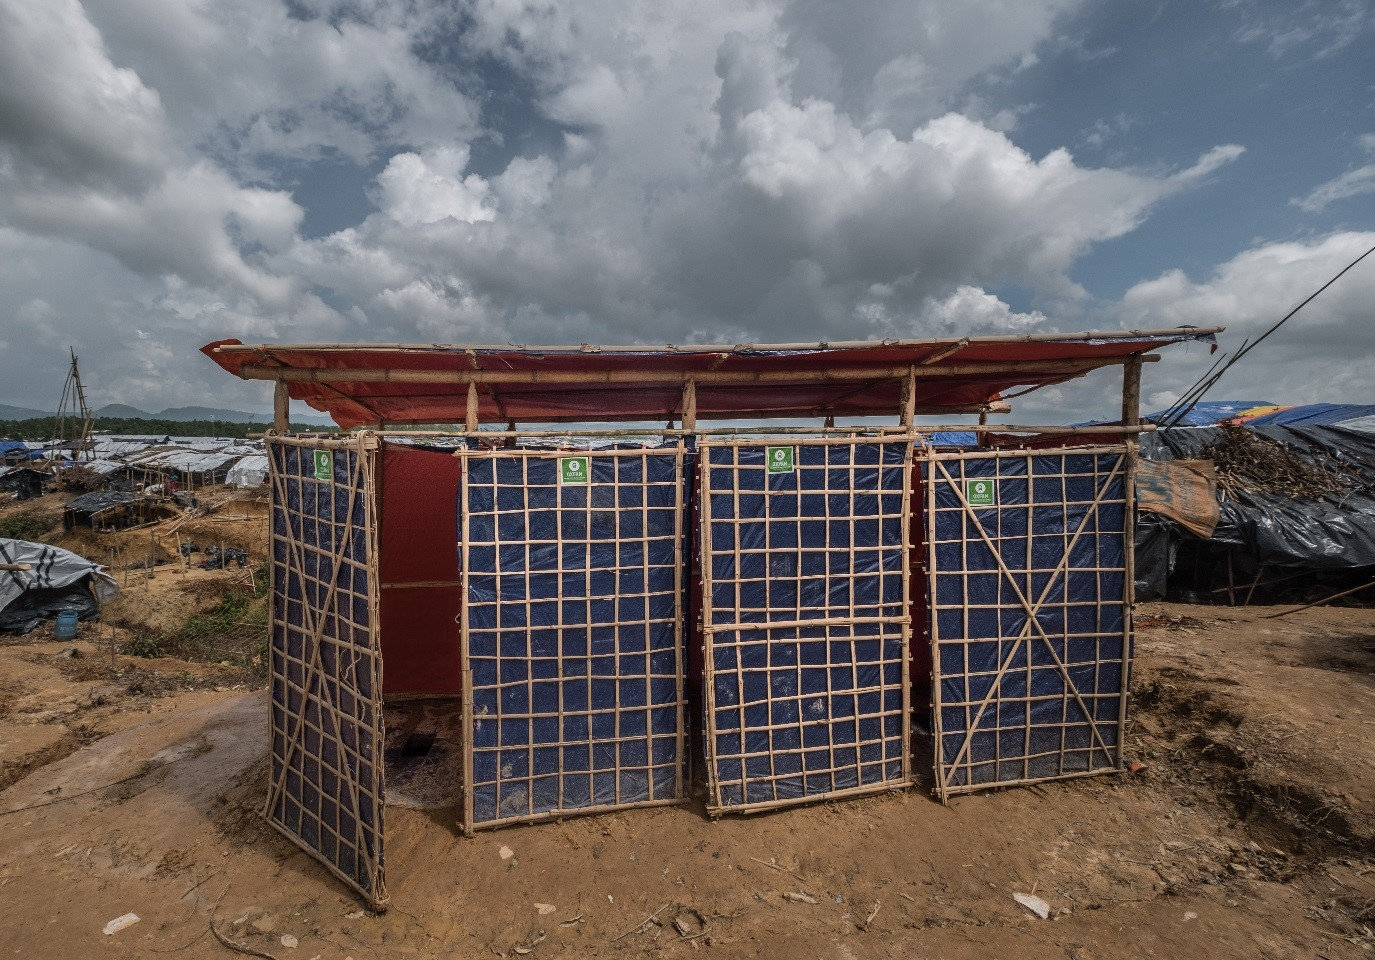 Photo caption: AHP-funded latrines in Kutupalong Camp, Cox's Bazar, Bangladesh. Credit: Tommy Trenchard/Oxfam. Date: February 2018.